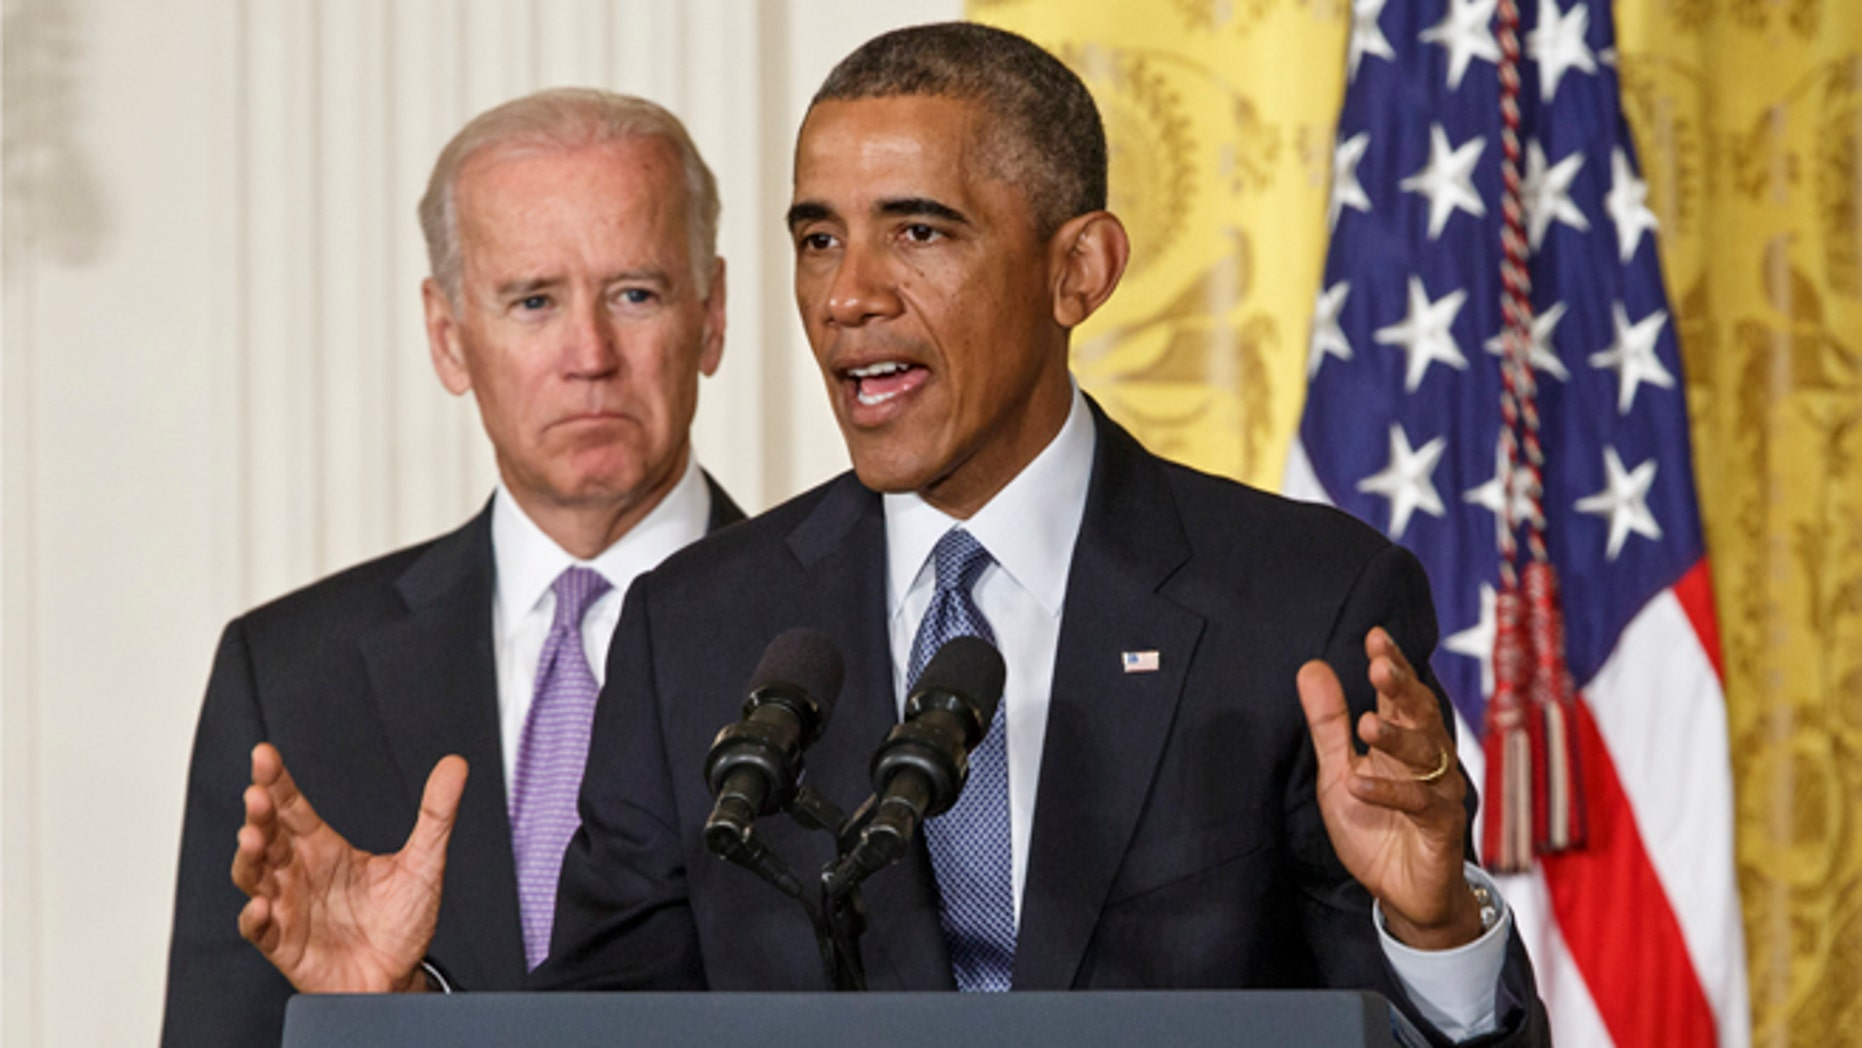 In this Friday, Sept. 19, 2014 photo, President Obama, with Vice President Biden, left, outlines the 'It's On Us' campaign to help colleges and universities to prevent and respond to sexual assault on campus, at the White House in Washington.